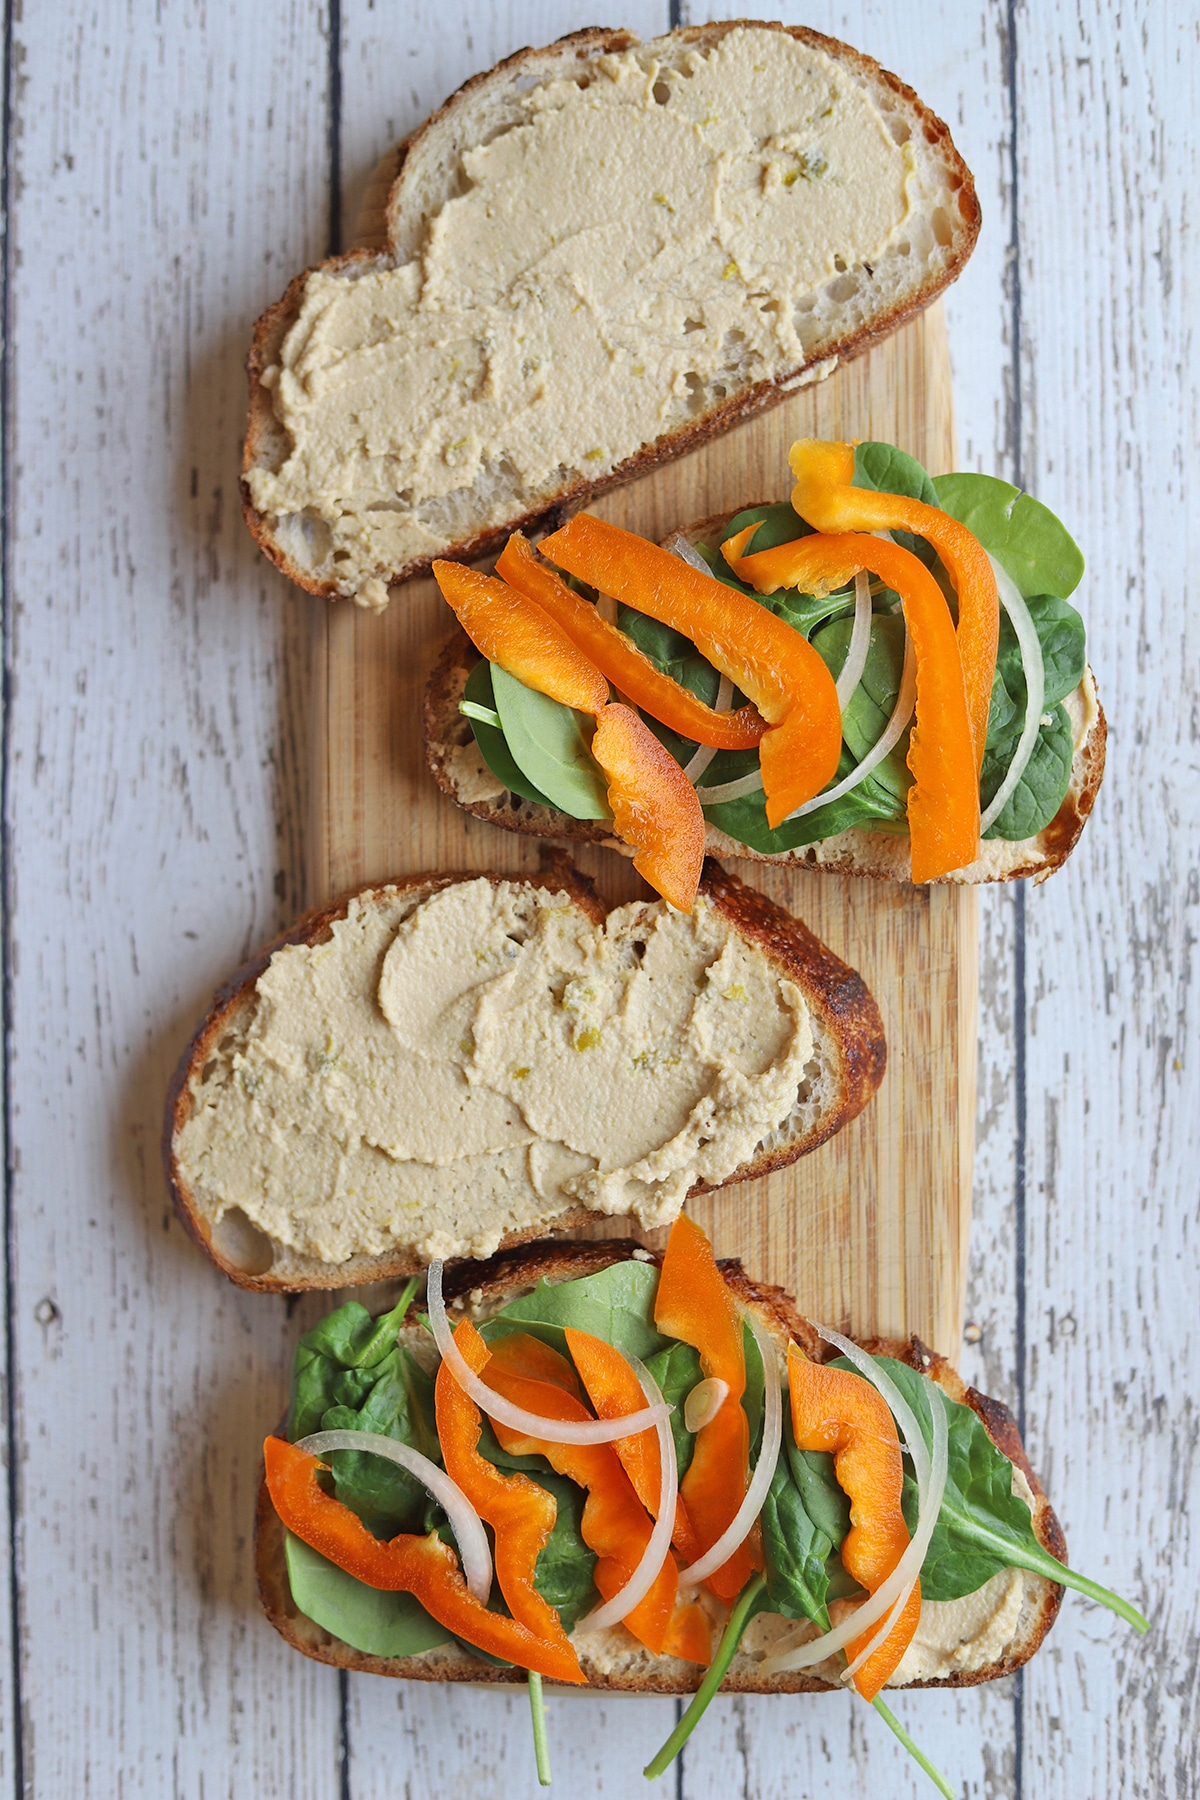 Bread slathered with jalapeno cashew cheese and sliced vegetables.